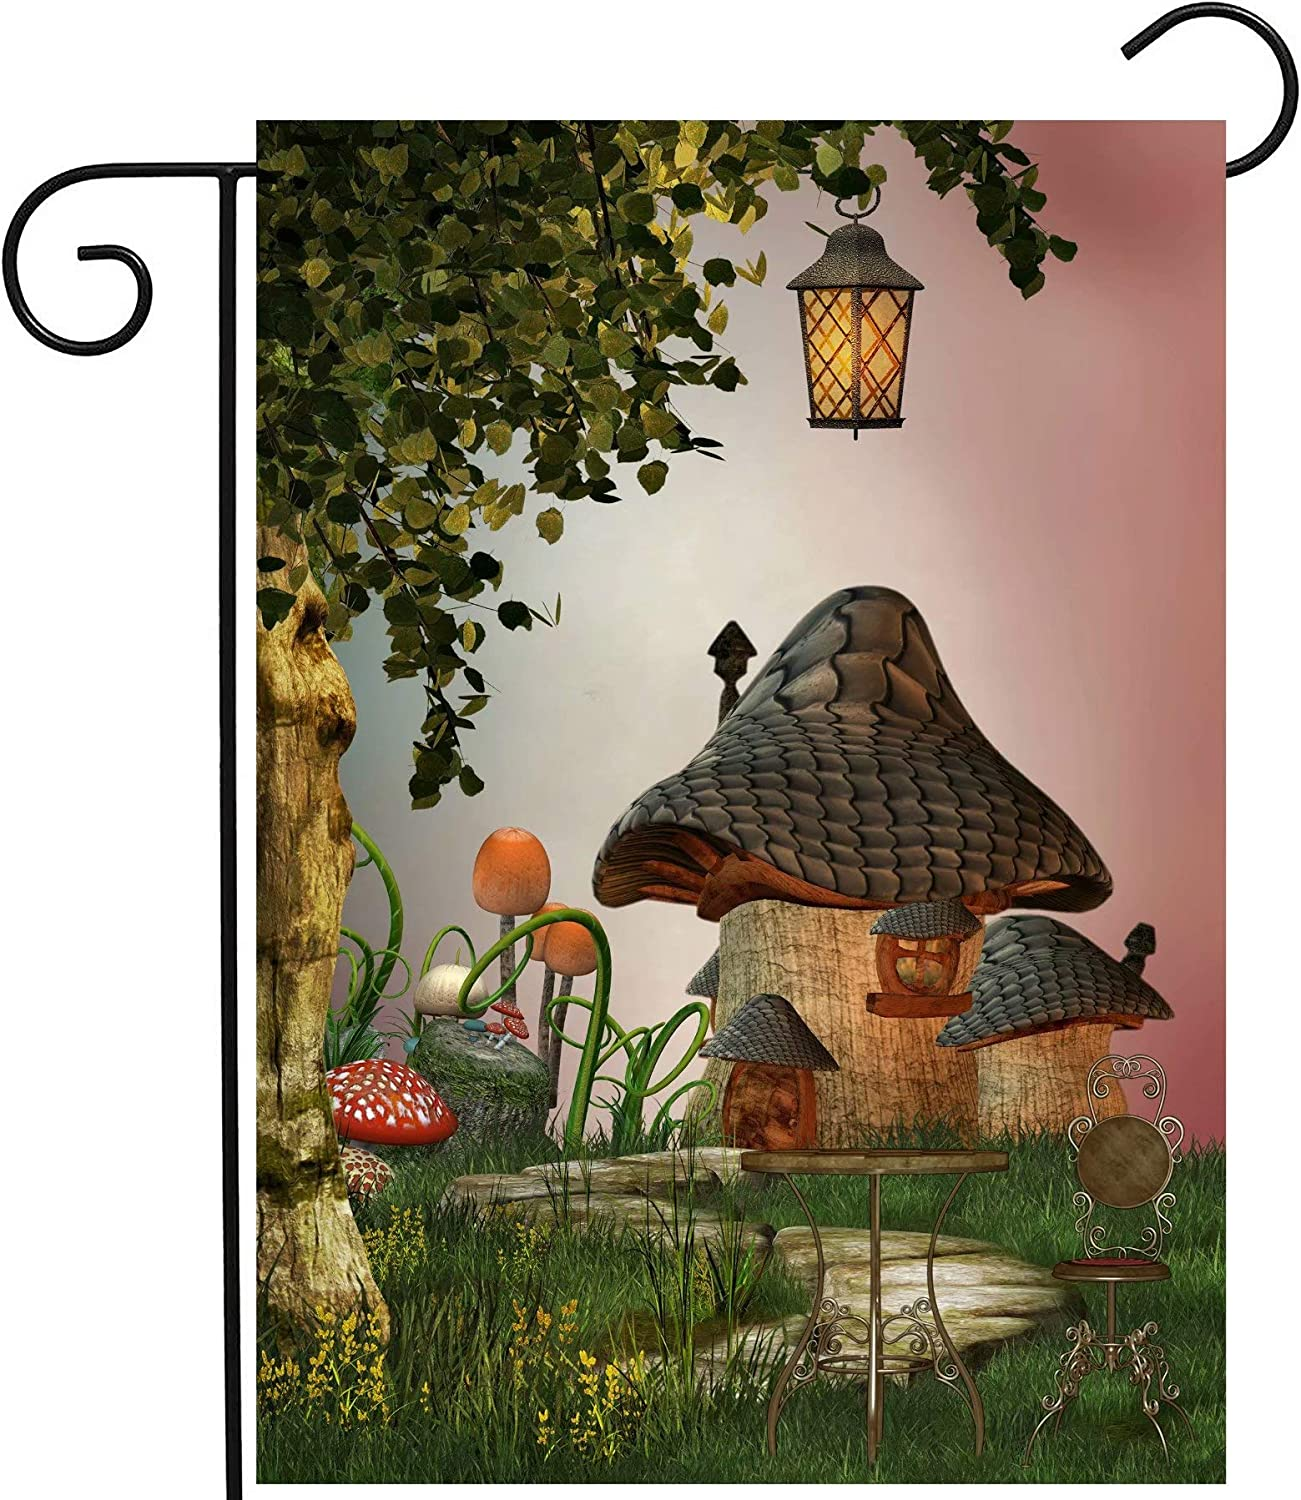 """ShineSnow Fantastic Fairy Tales Mushroom Garden Landscape Tree Light Garden Yard Flag 12""""x 18"""" Double Sided, Polyester Welcome House Flag Banners for Patio Lawn Outdoor Home Decor"""